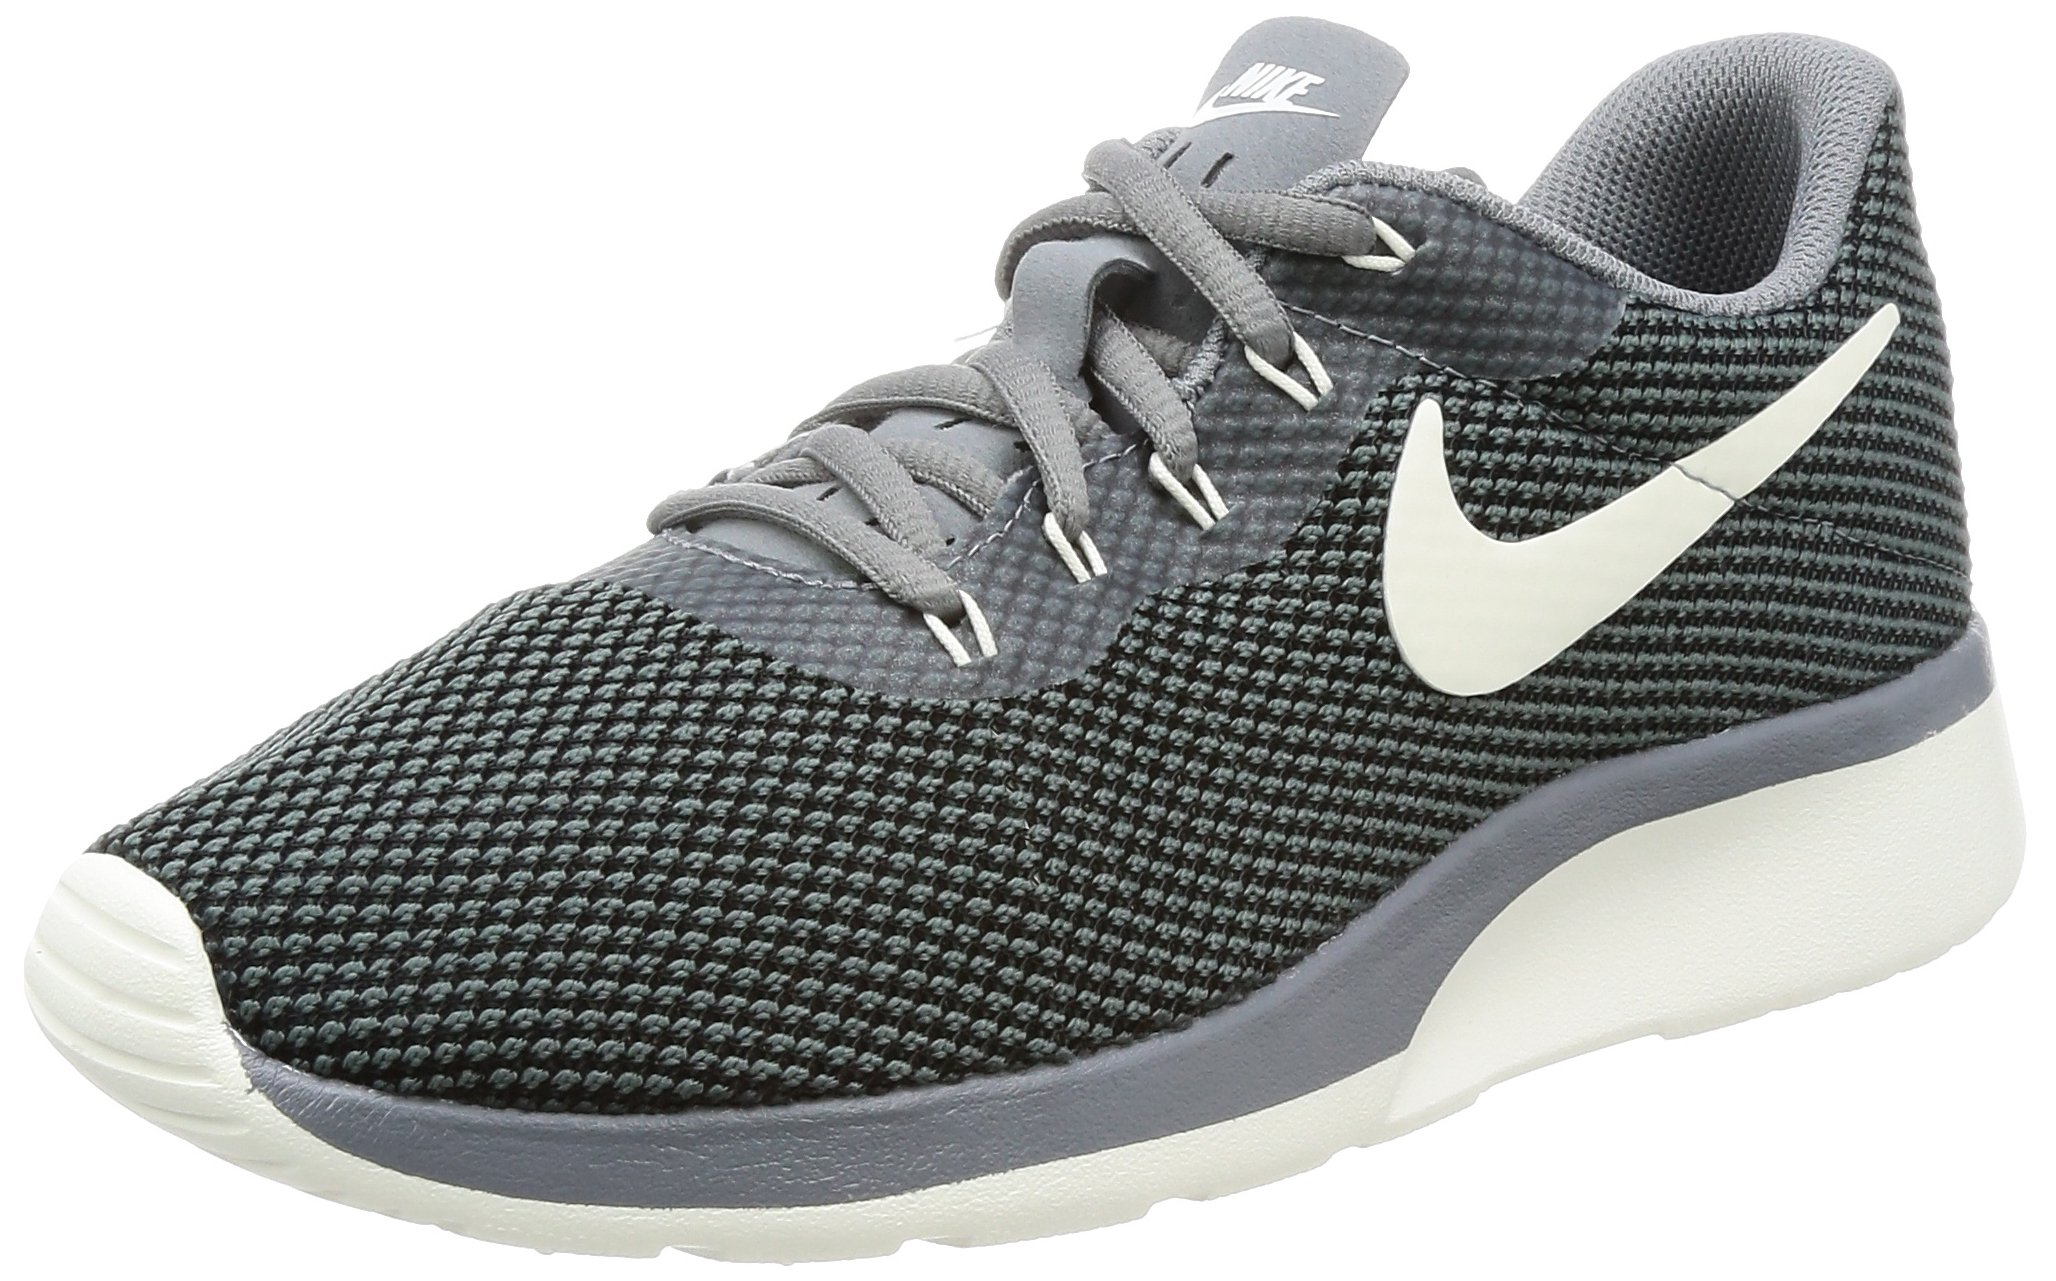 NIKE Womens Tanjun Racer Running Shoe (9.5 B(M) US, Cool Grey/Sail-Black)